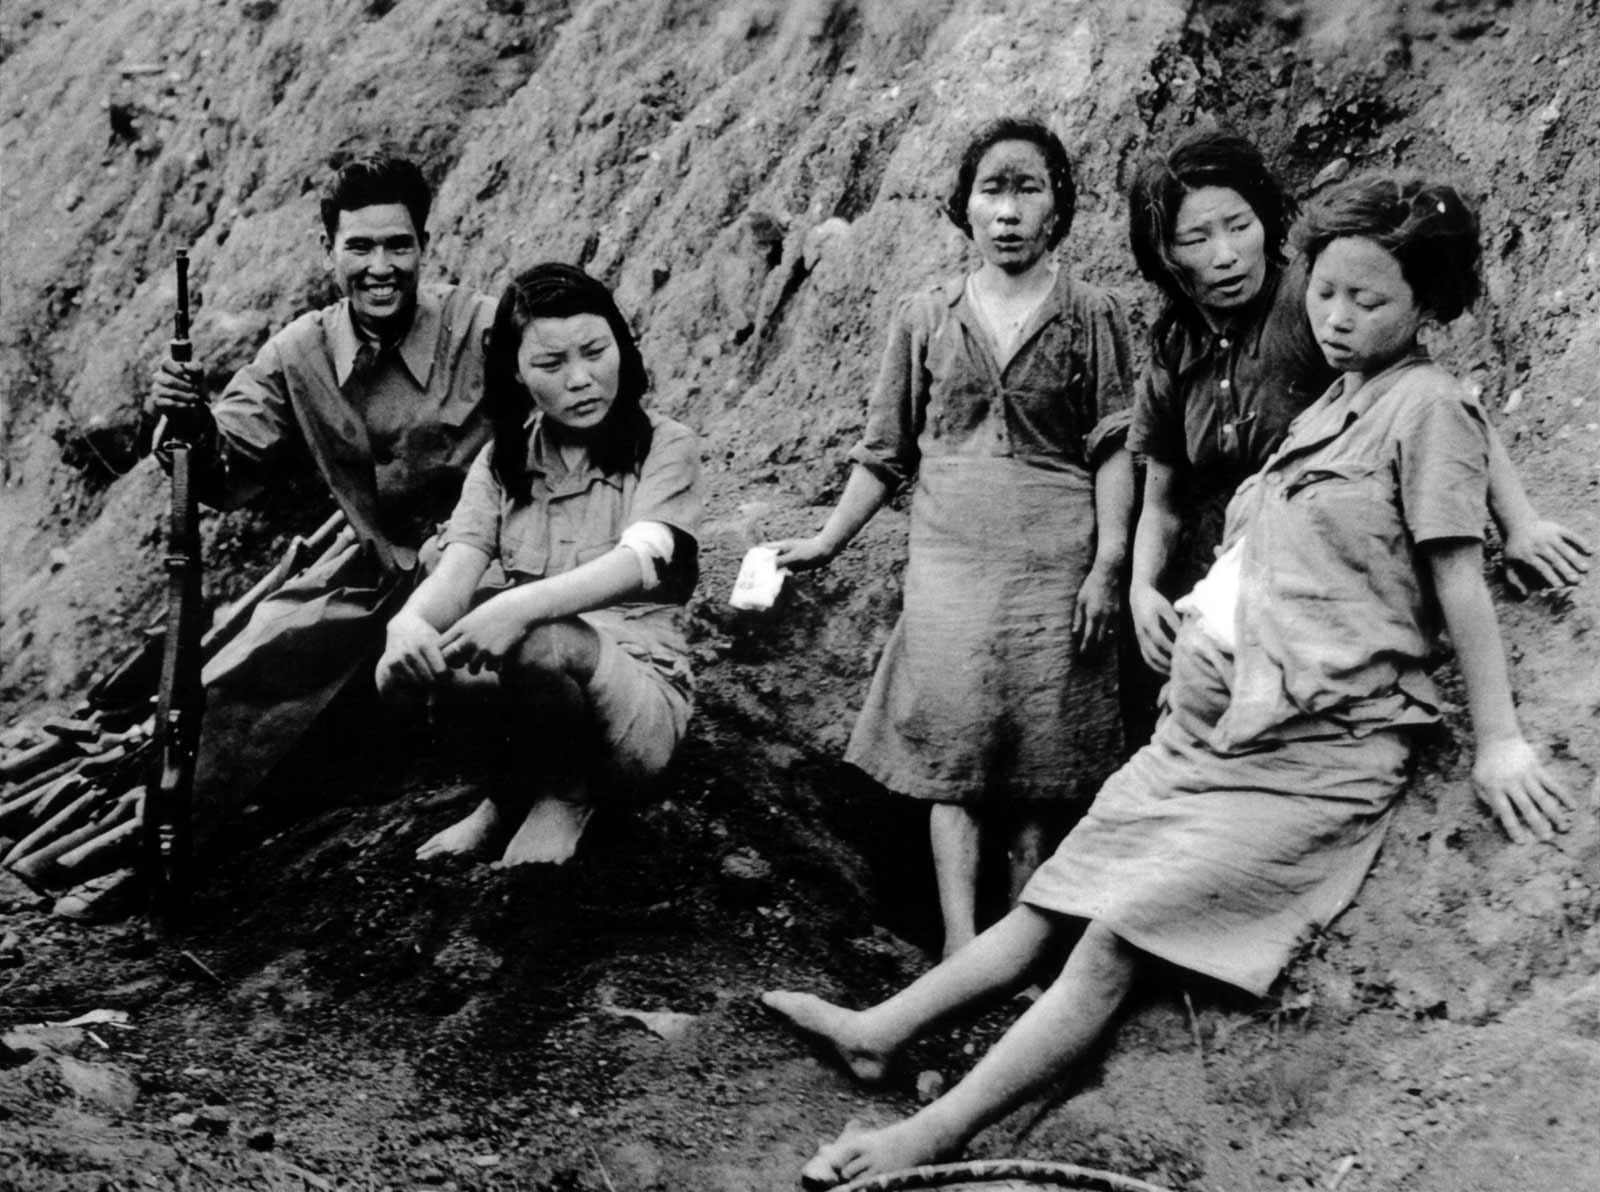 Chinese soldier with Korean 'comfort women' after they were liberated by US-China Allied Forces, Songshan, Yunnan Province, China. September 3, 1944 Photo by Charles H. Hatfield, U.S. 164th Signal Photo Company, US National Archives